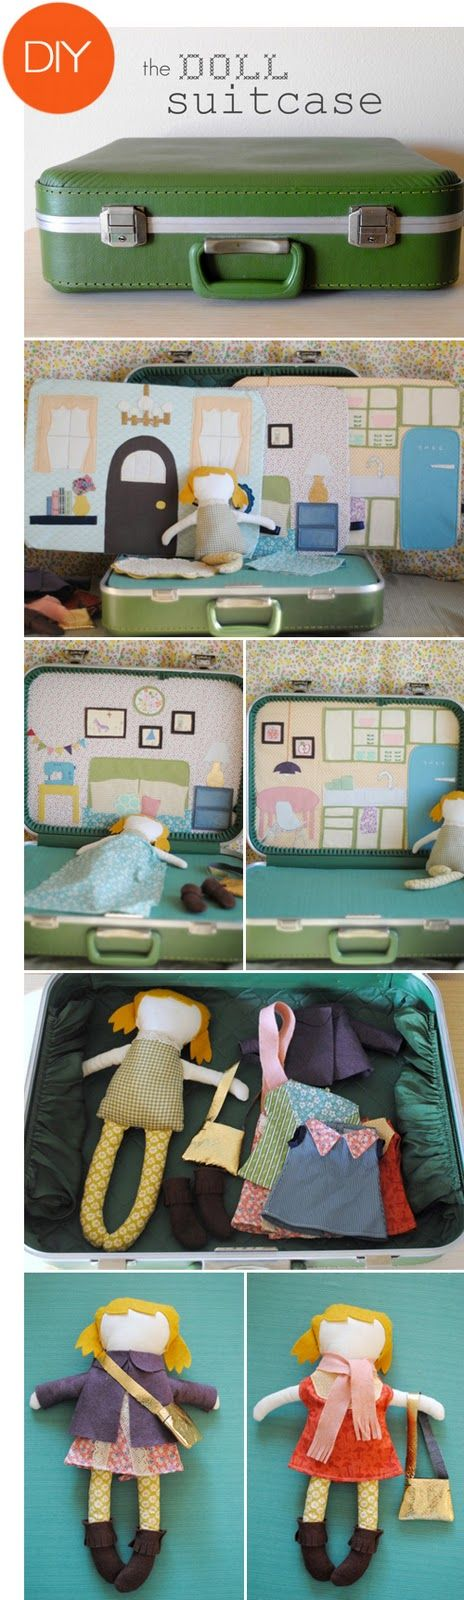 a diy doll suitcase...adorable!!!! Now I know what to do with those old suitcases I see at the flohmarkt !